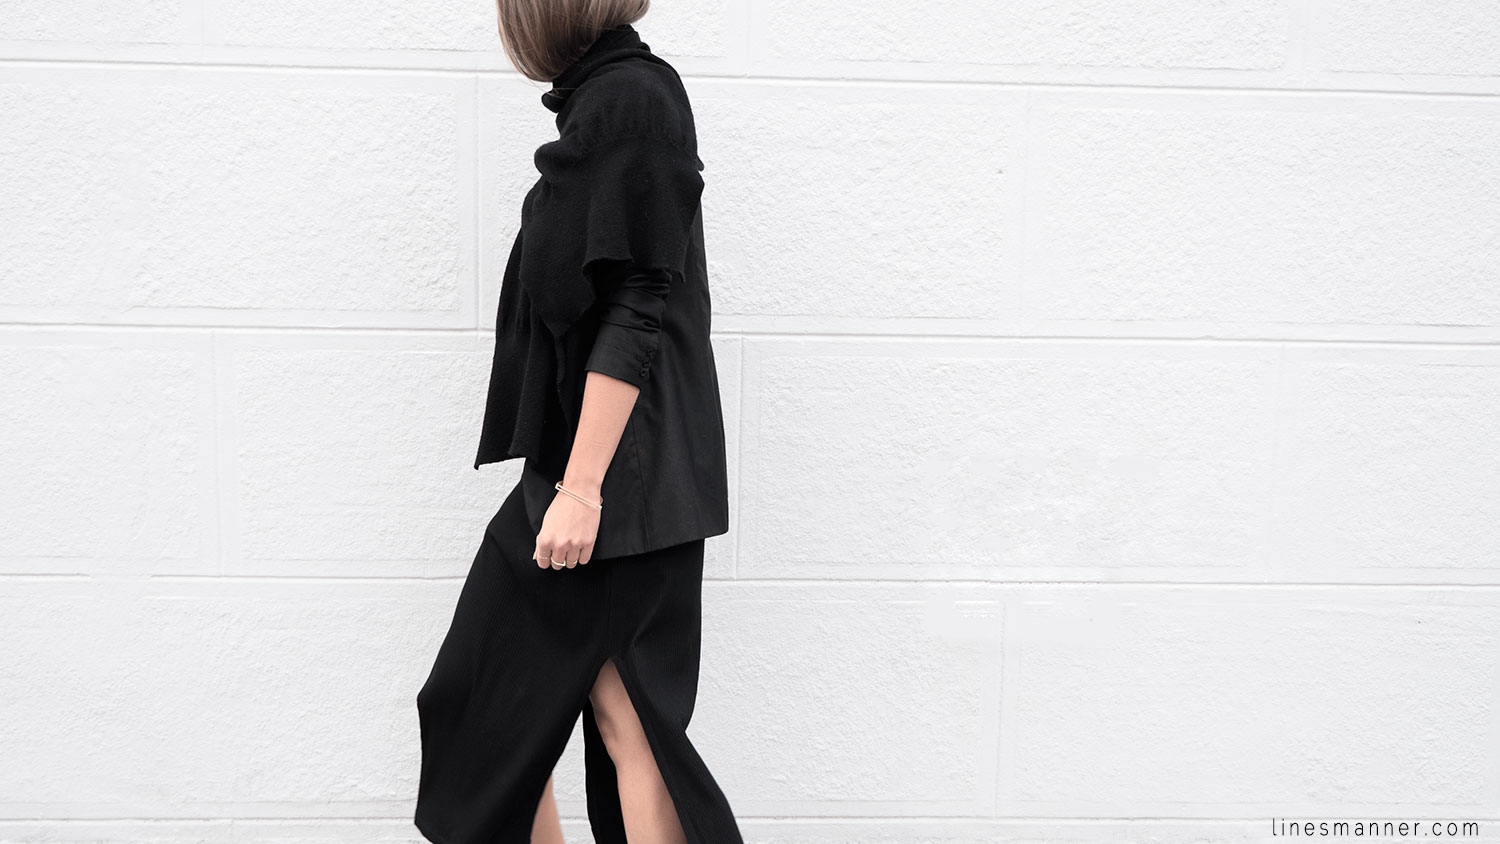 Lines-Manner-Remind-2015-Minimal-Essential-Outfit-Inspiration-Blog-Timeless-Year-Seasons-Details-Travel-Fashion-Versatile-Clean-Sleek-Quality-14